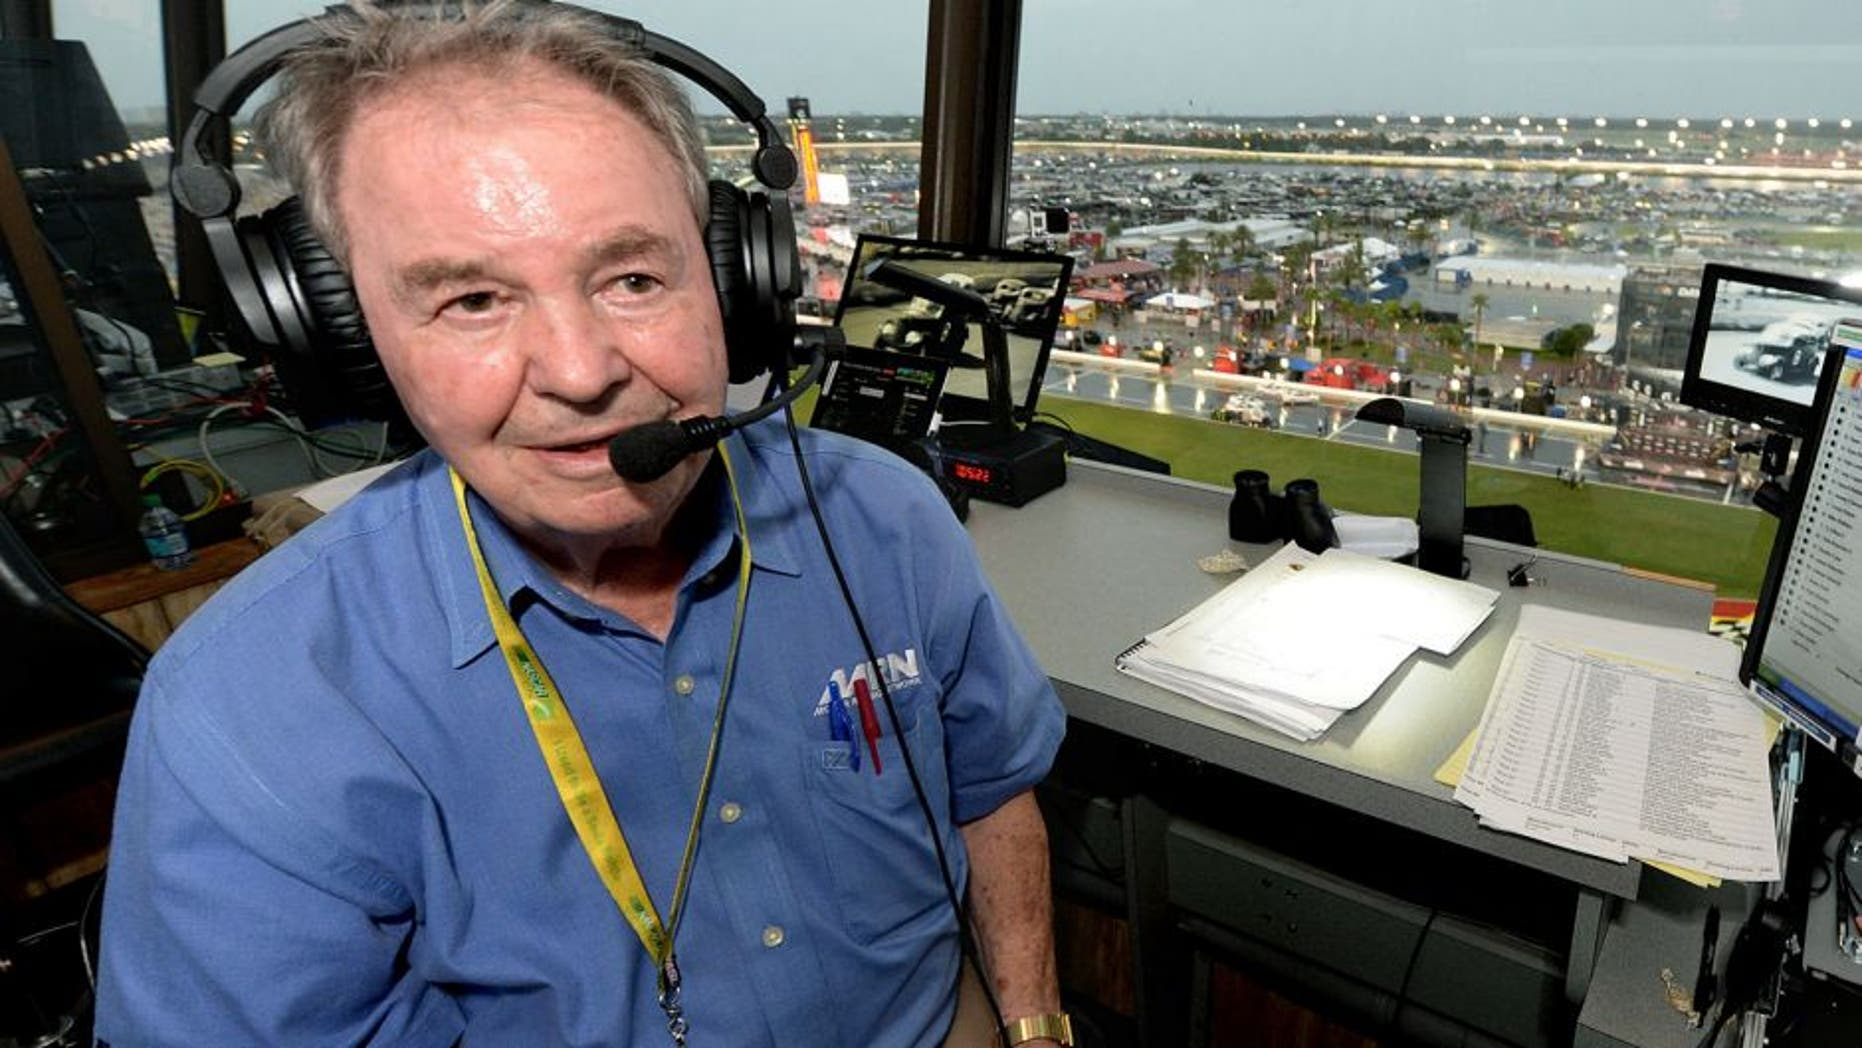 Jul 5, 2014; Daytona Beach, FL, USA; Motor Racing Network radio announcer Barney Hall pauses for a portrait in the radio booth during a rain delay for the Coke Zero 400 at Daytona International Speedway. With more than 50 years of calling races, the 82-year-old Hall will remain a vibrant part of Motor Racing Network broadcasts, but tonight s Coke Zero 400 will be his final as MRN s lead play-by-play announcer in the booth. Mandatory Credit: John David Mercer-USA TODAY Sports